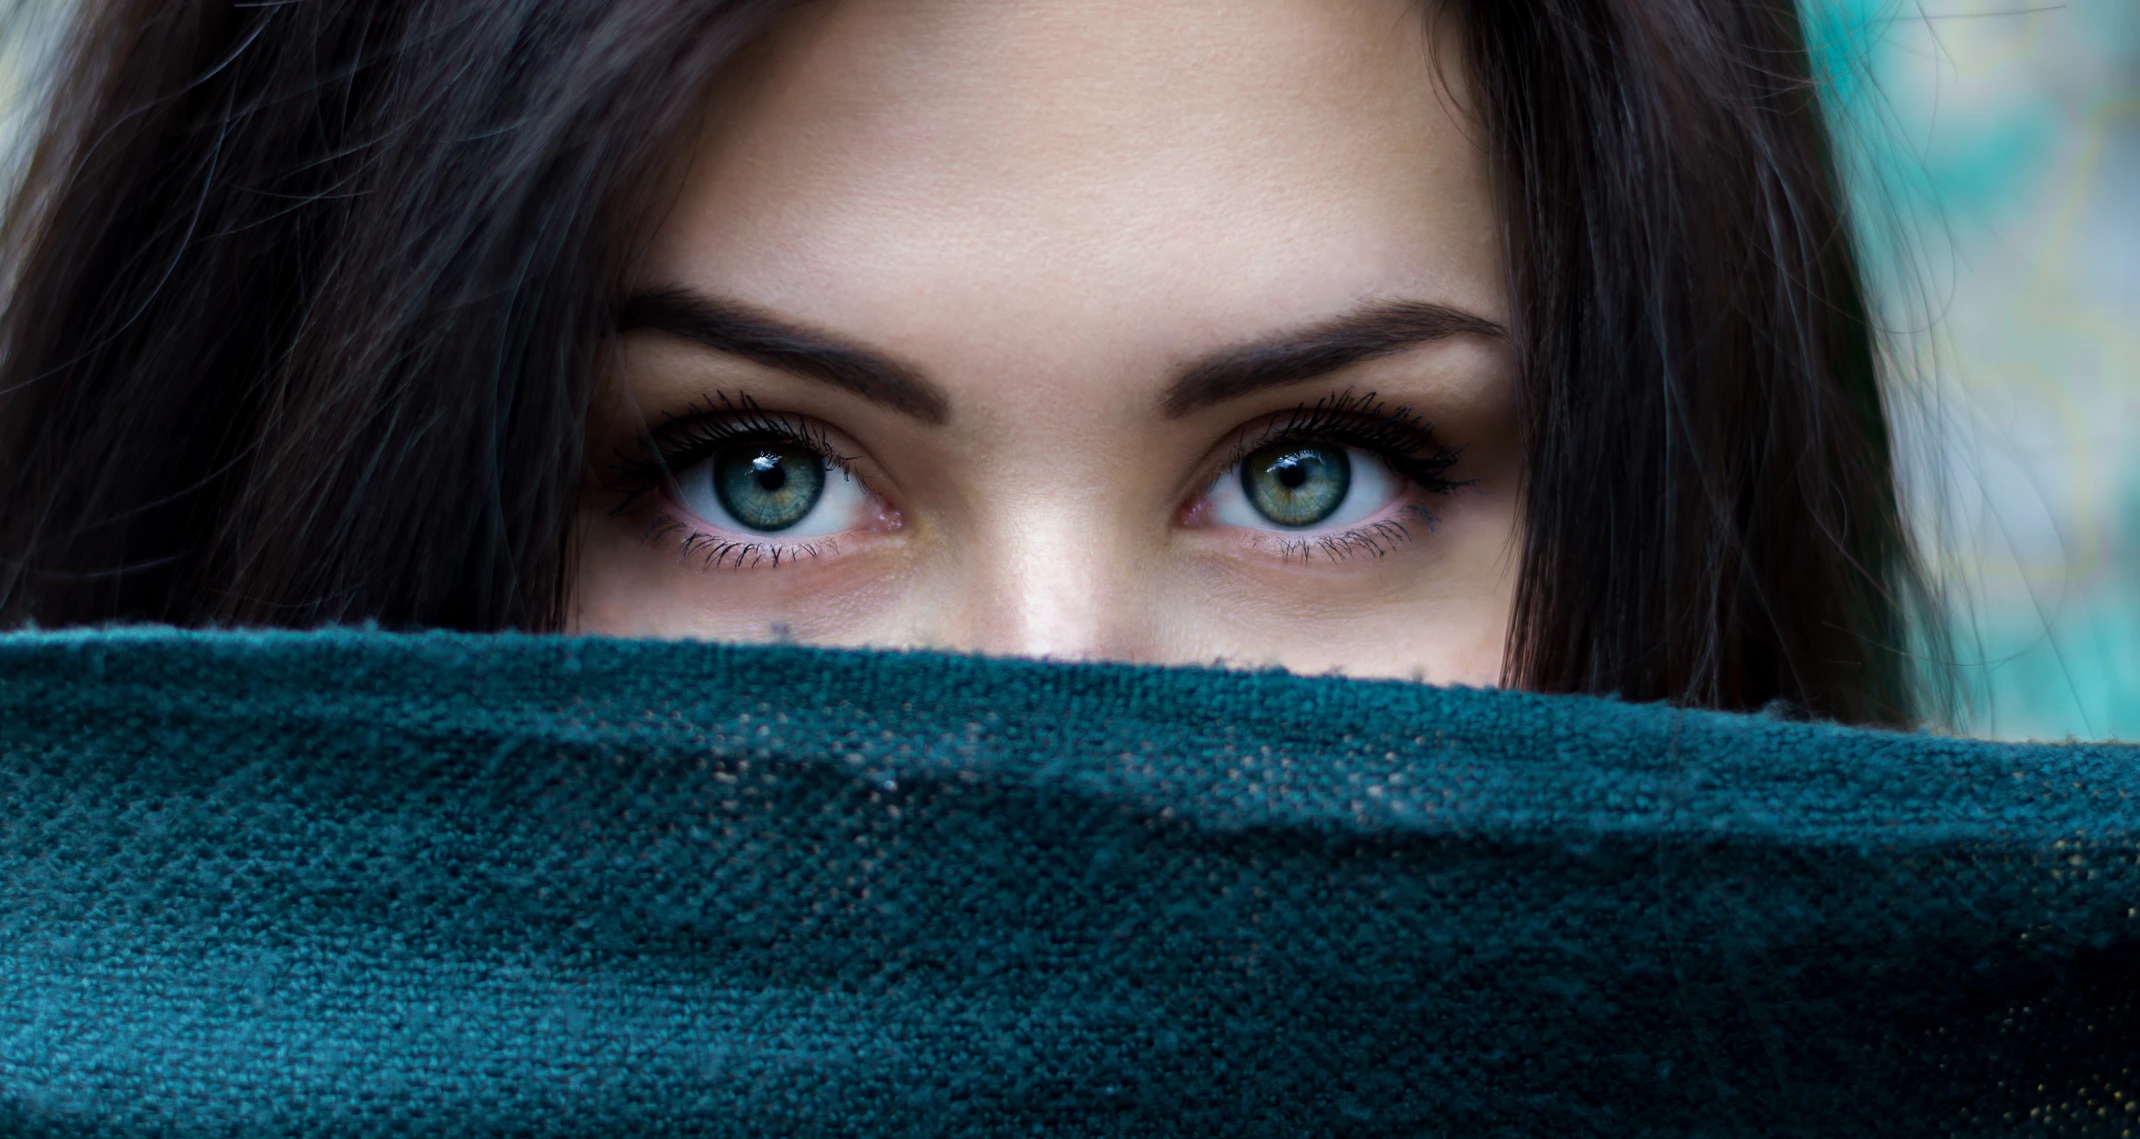 Sleep leads to brighter, less puffy eyes